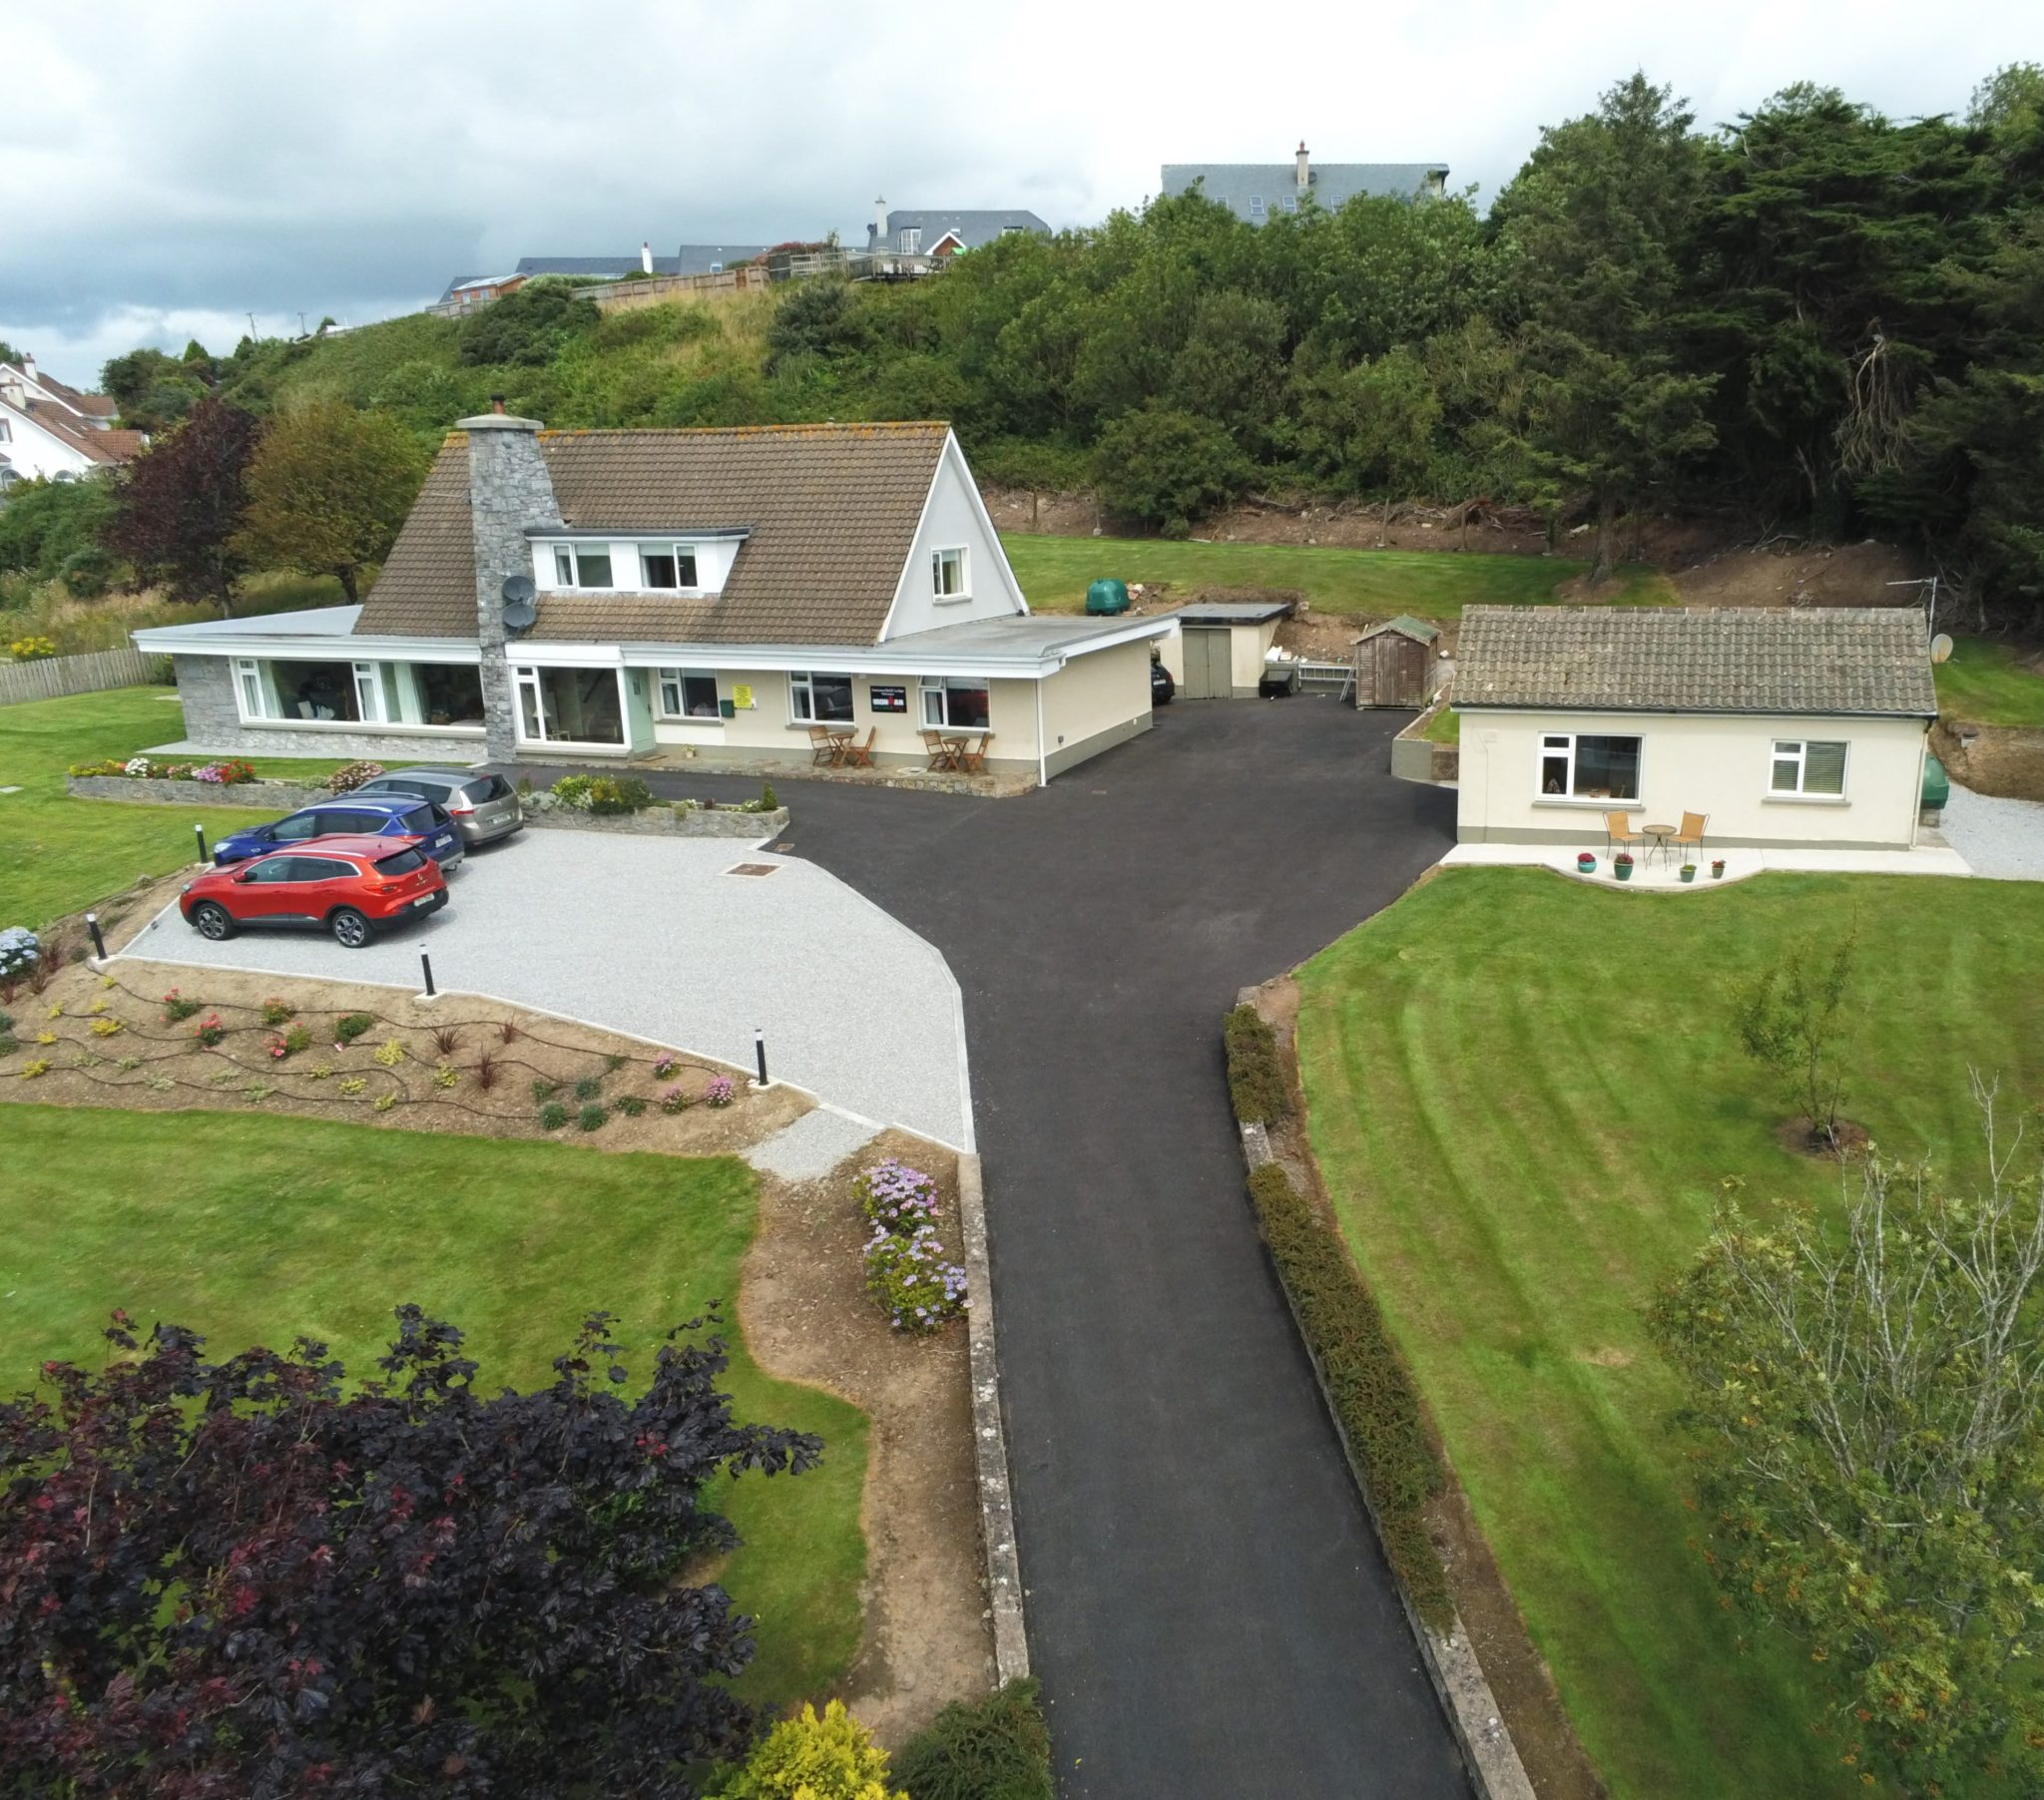 Summerfield Lodge Youghal | www.ringofcork.ie | Ring of Cork